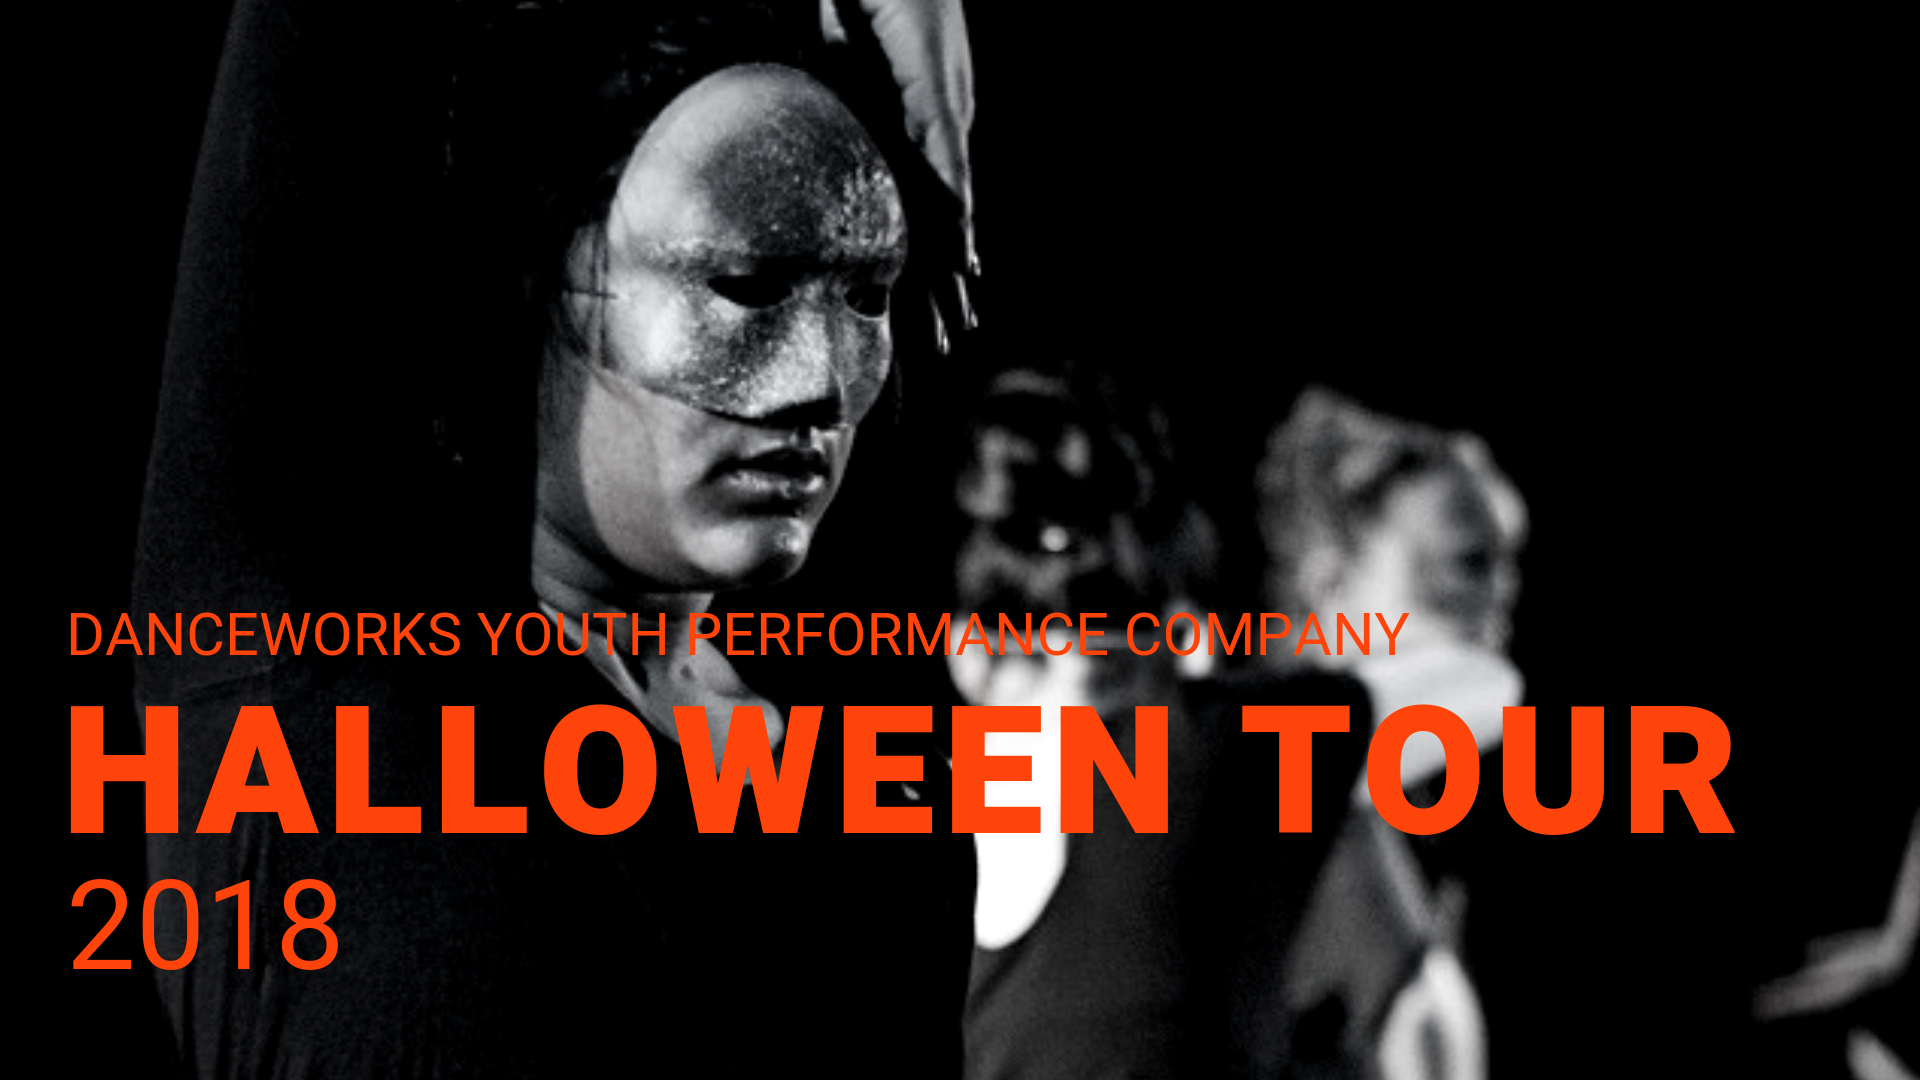 danceworks youth performance companys haunted halloween tour